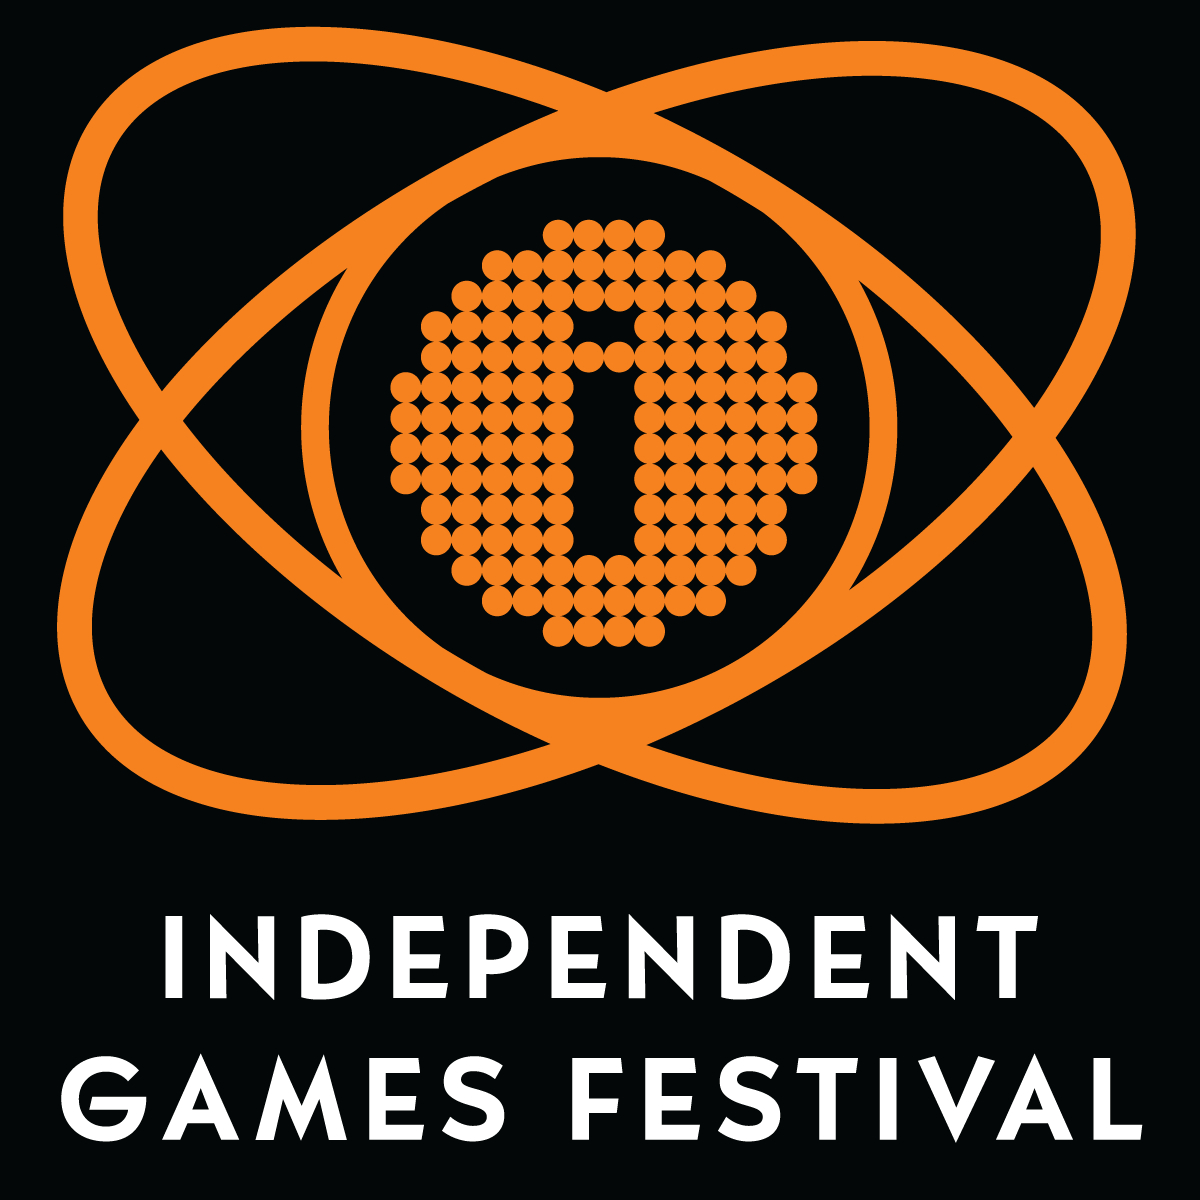 INDEPENDENT GAMES FESTIVAL 2018